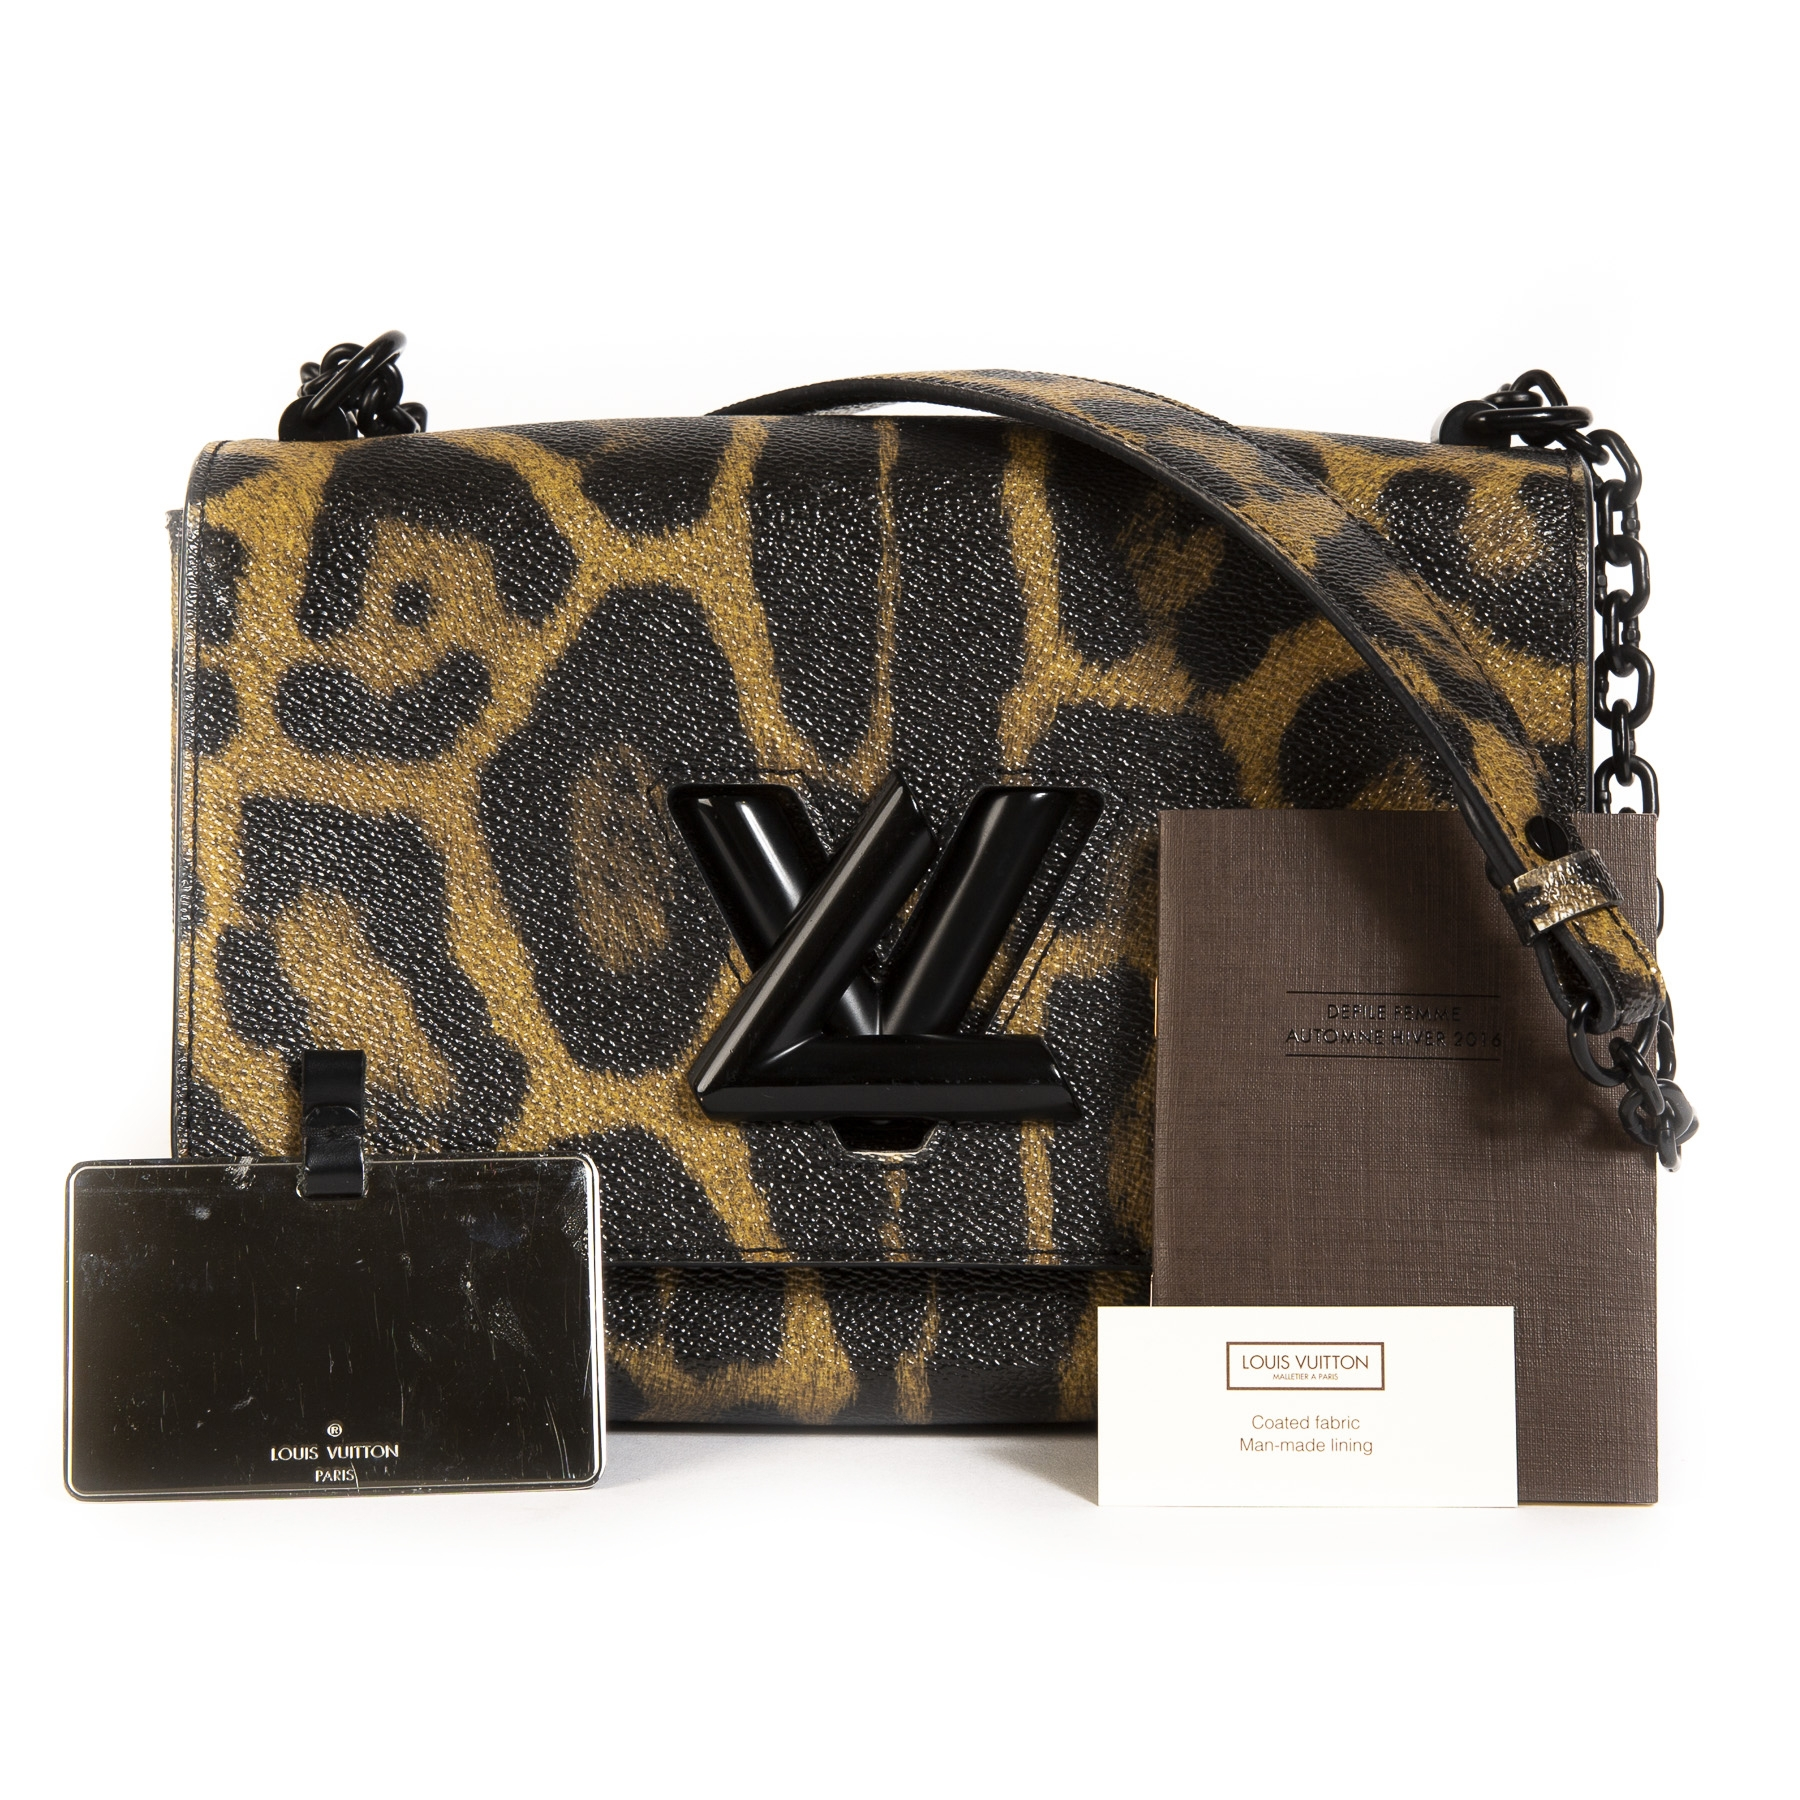 Louis Vuitton Leopard Twist MM Bag